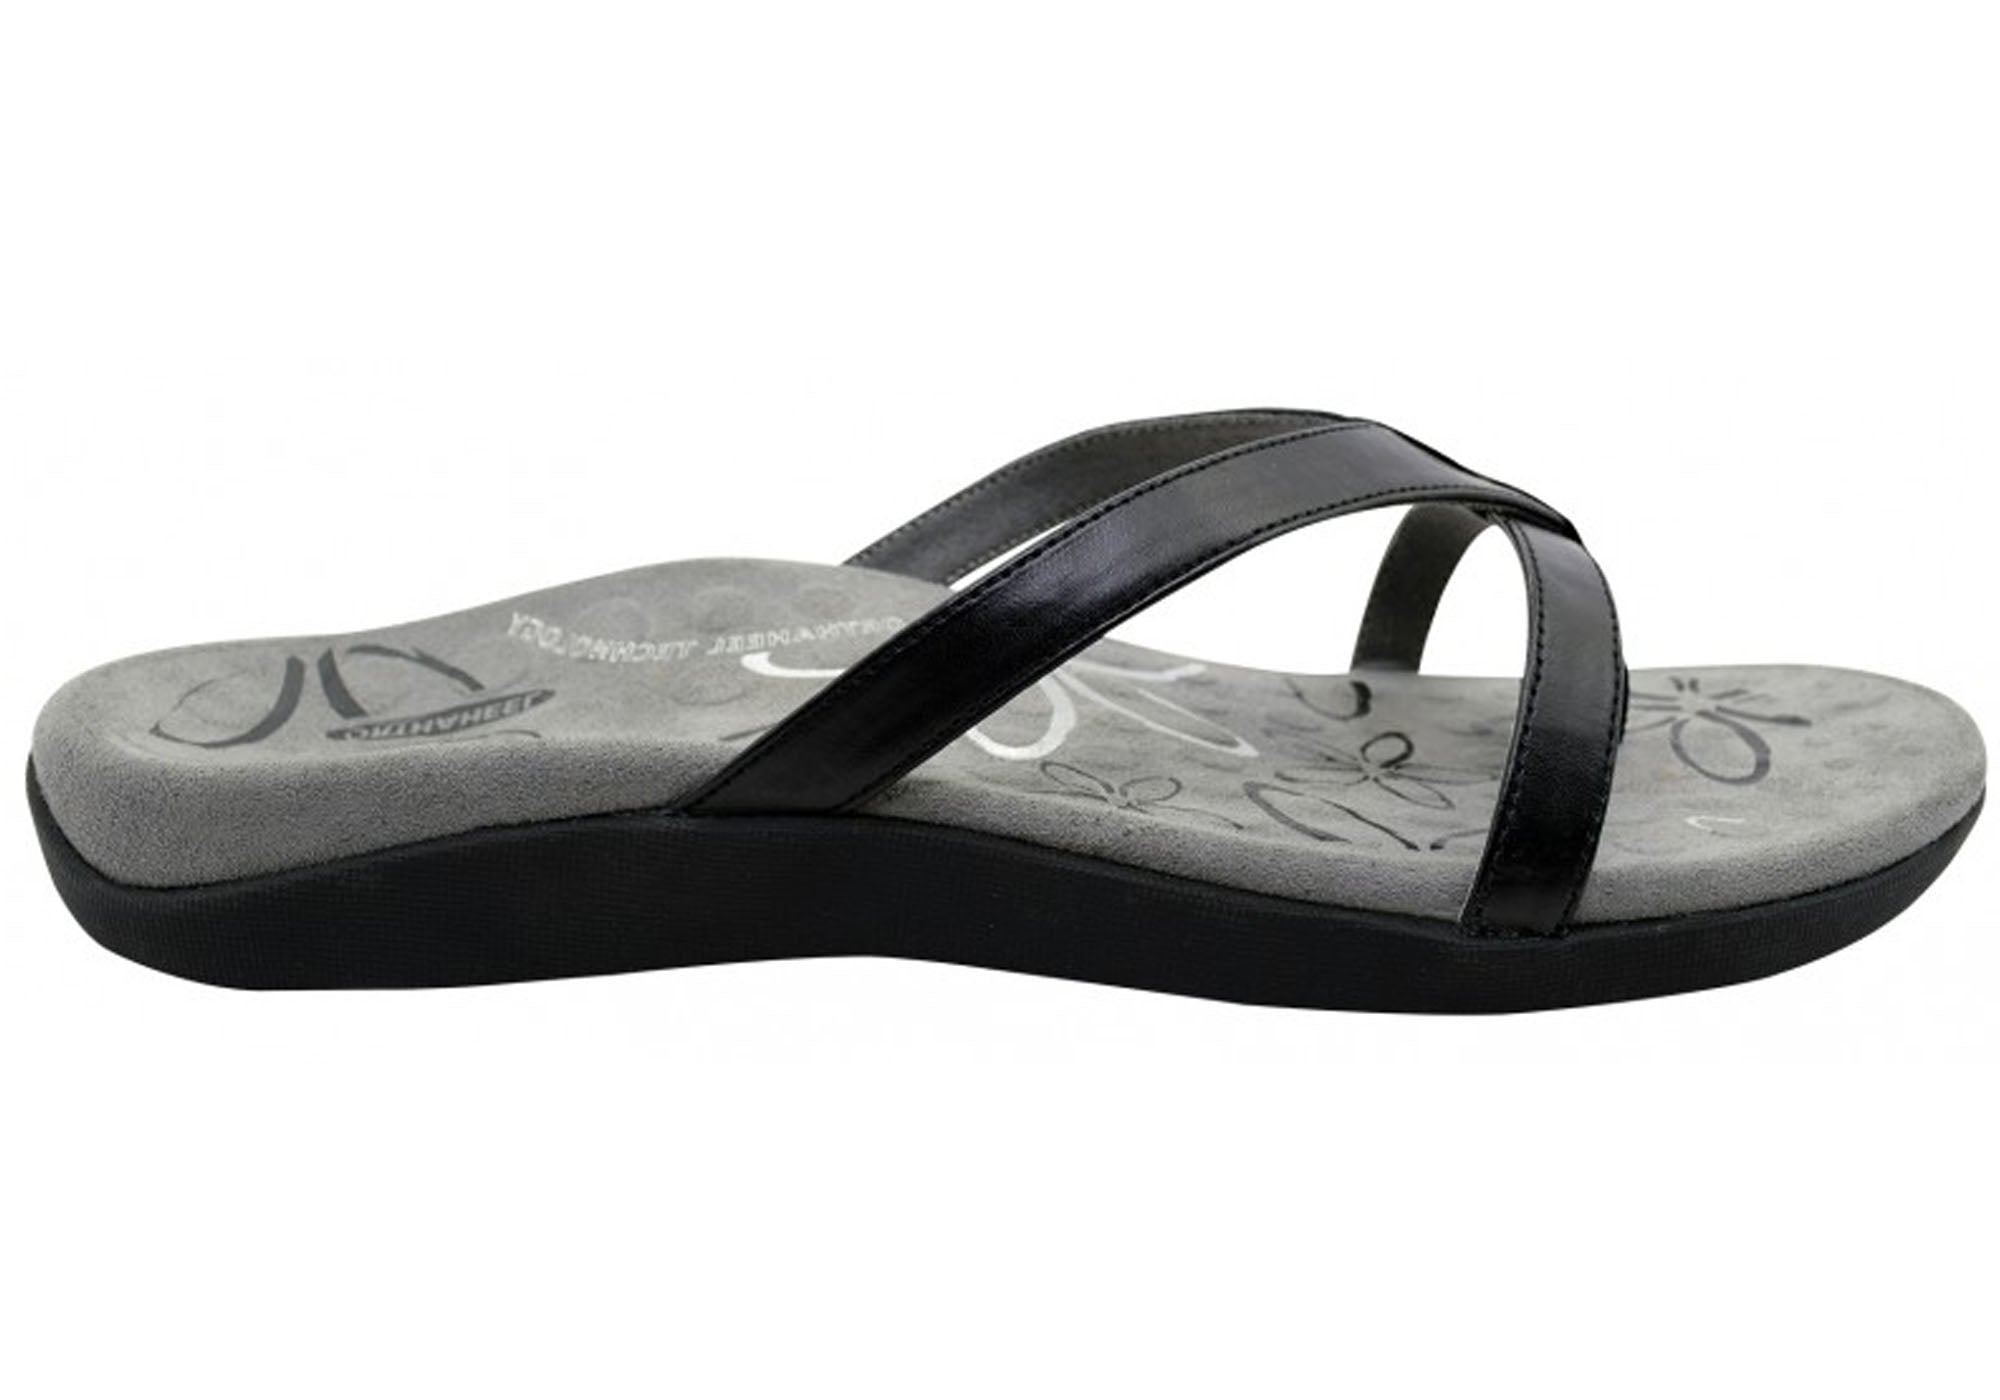 Orthaheel Scholl Orthotic Supportive Shaynna Thongs Black